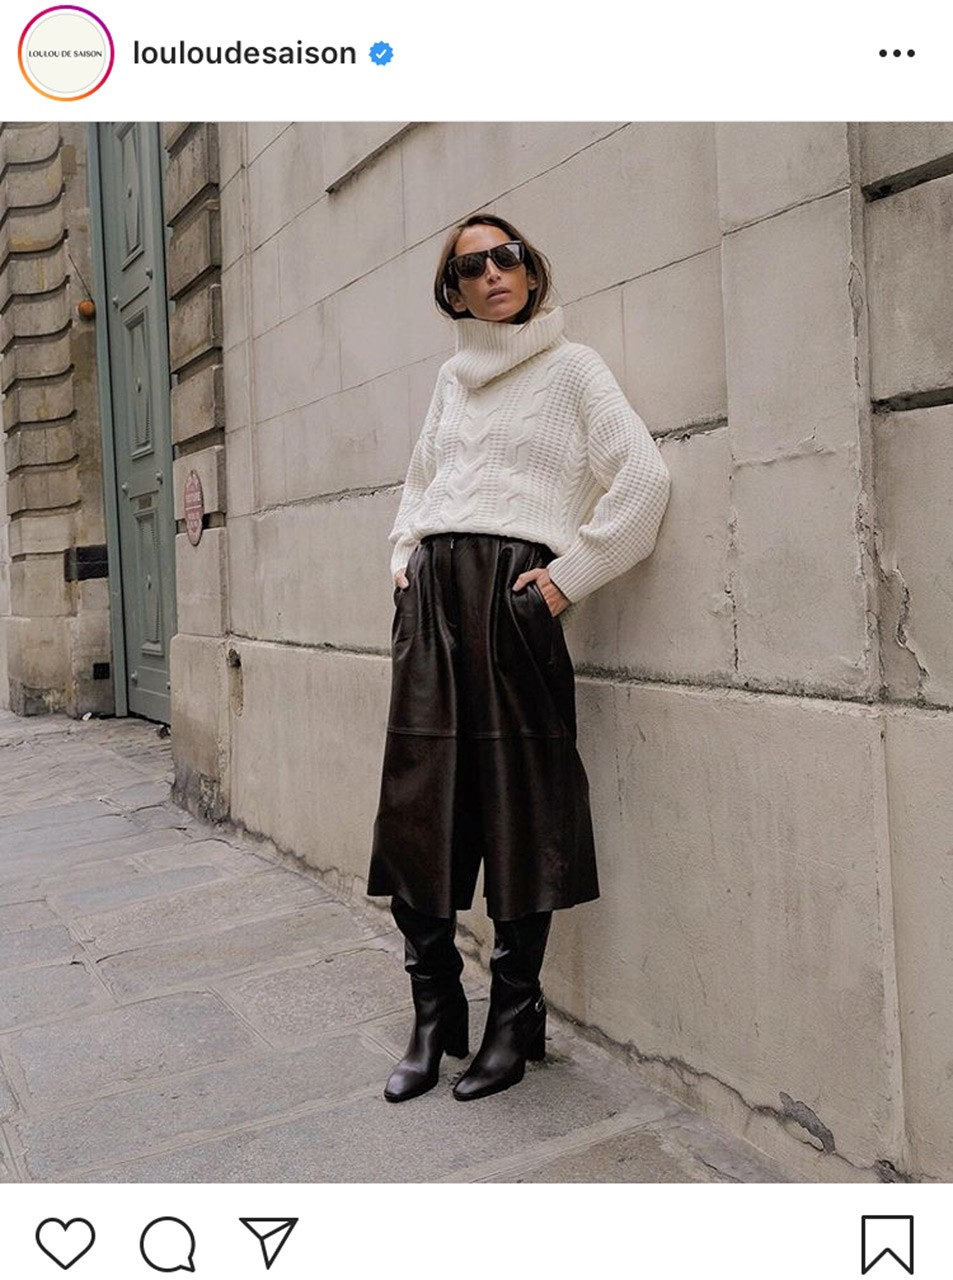 how-to-wea-tall-slouchy-boots-7.jpg